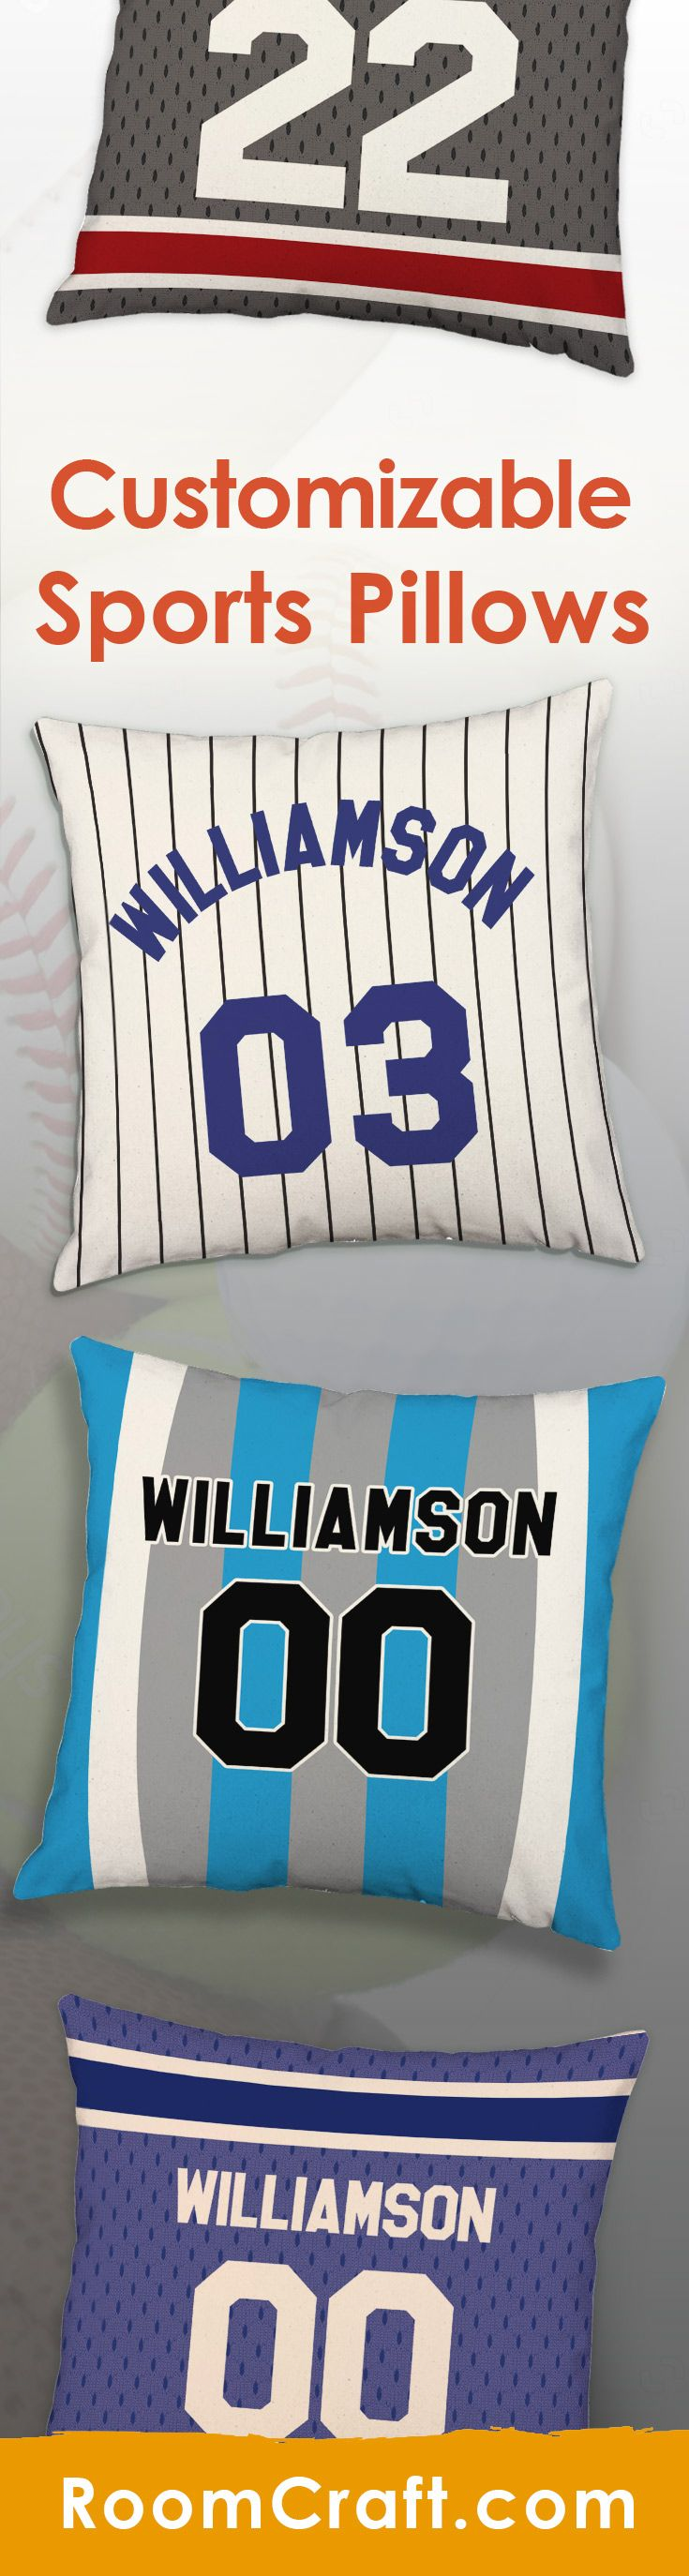 These personalizable sports jersey throw pillows are the perfect accent to make your sport lover's room complete. Each one is offered in multiple colors, sizes and fabrics making decorating fun and easy. These team jersey pillow cover sets are made to order in the USA and feature 3 wooden buttons on the back for closure. Choose your favorite and create a truly unique pillow set that will bring the beach right to your home! #roomcraft